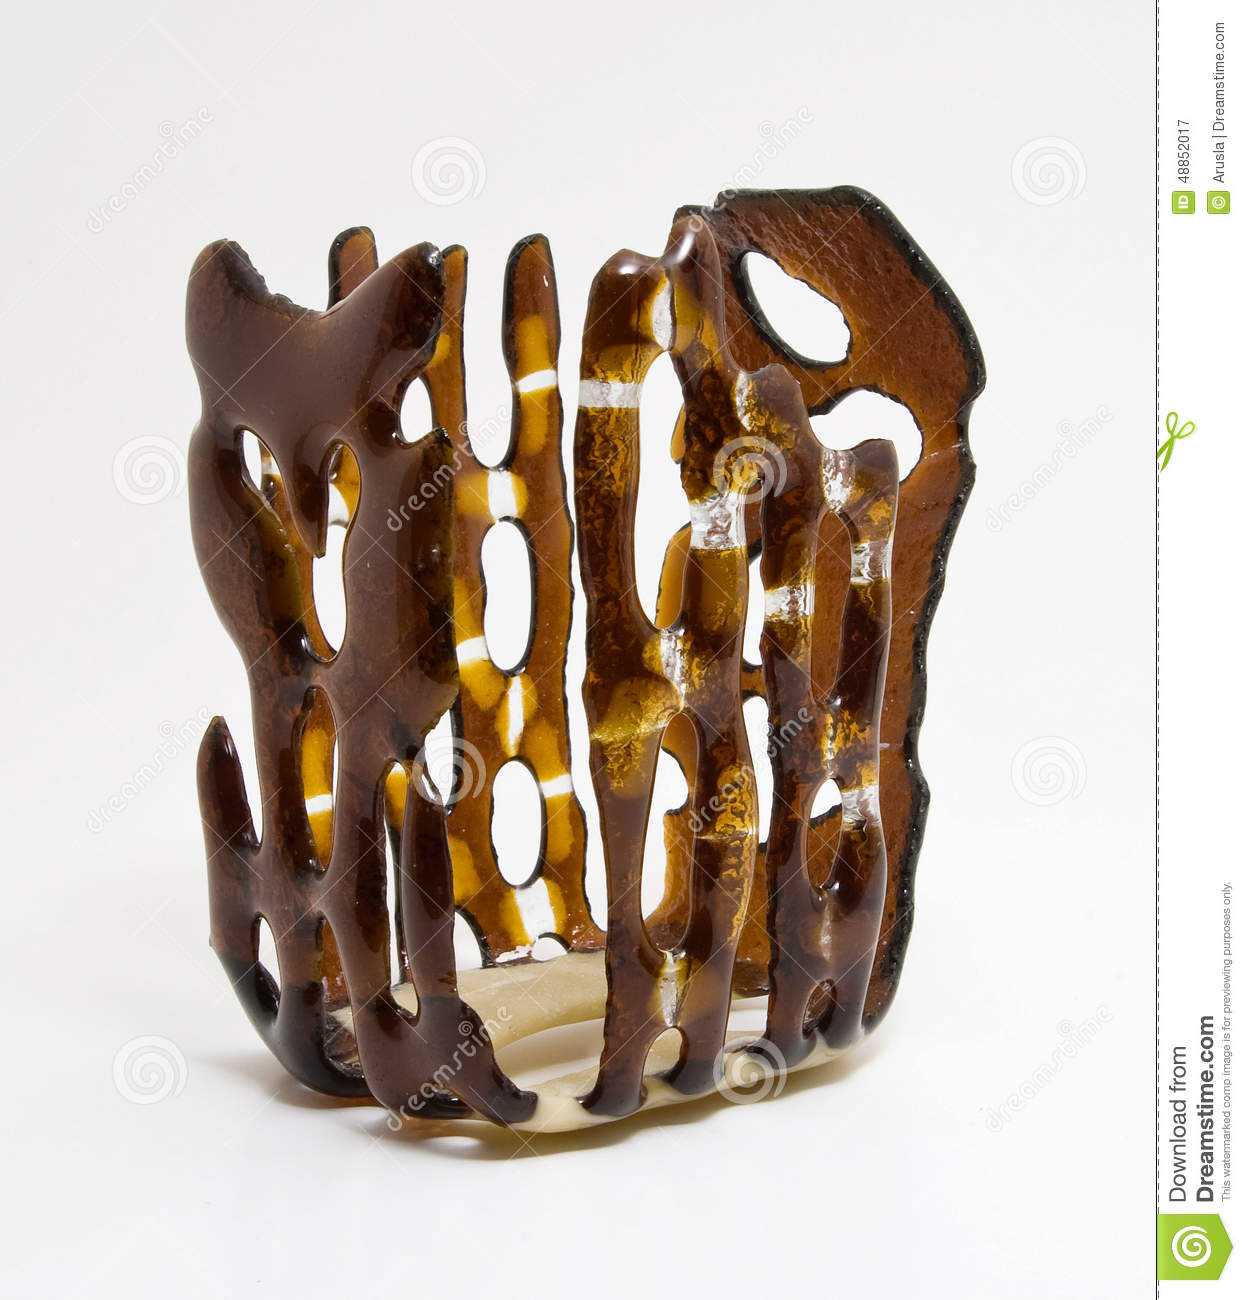 Vase Brown Candle Holder Candlestick Stock Image Image Of